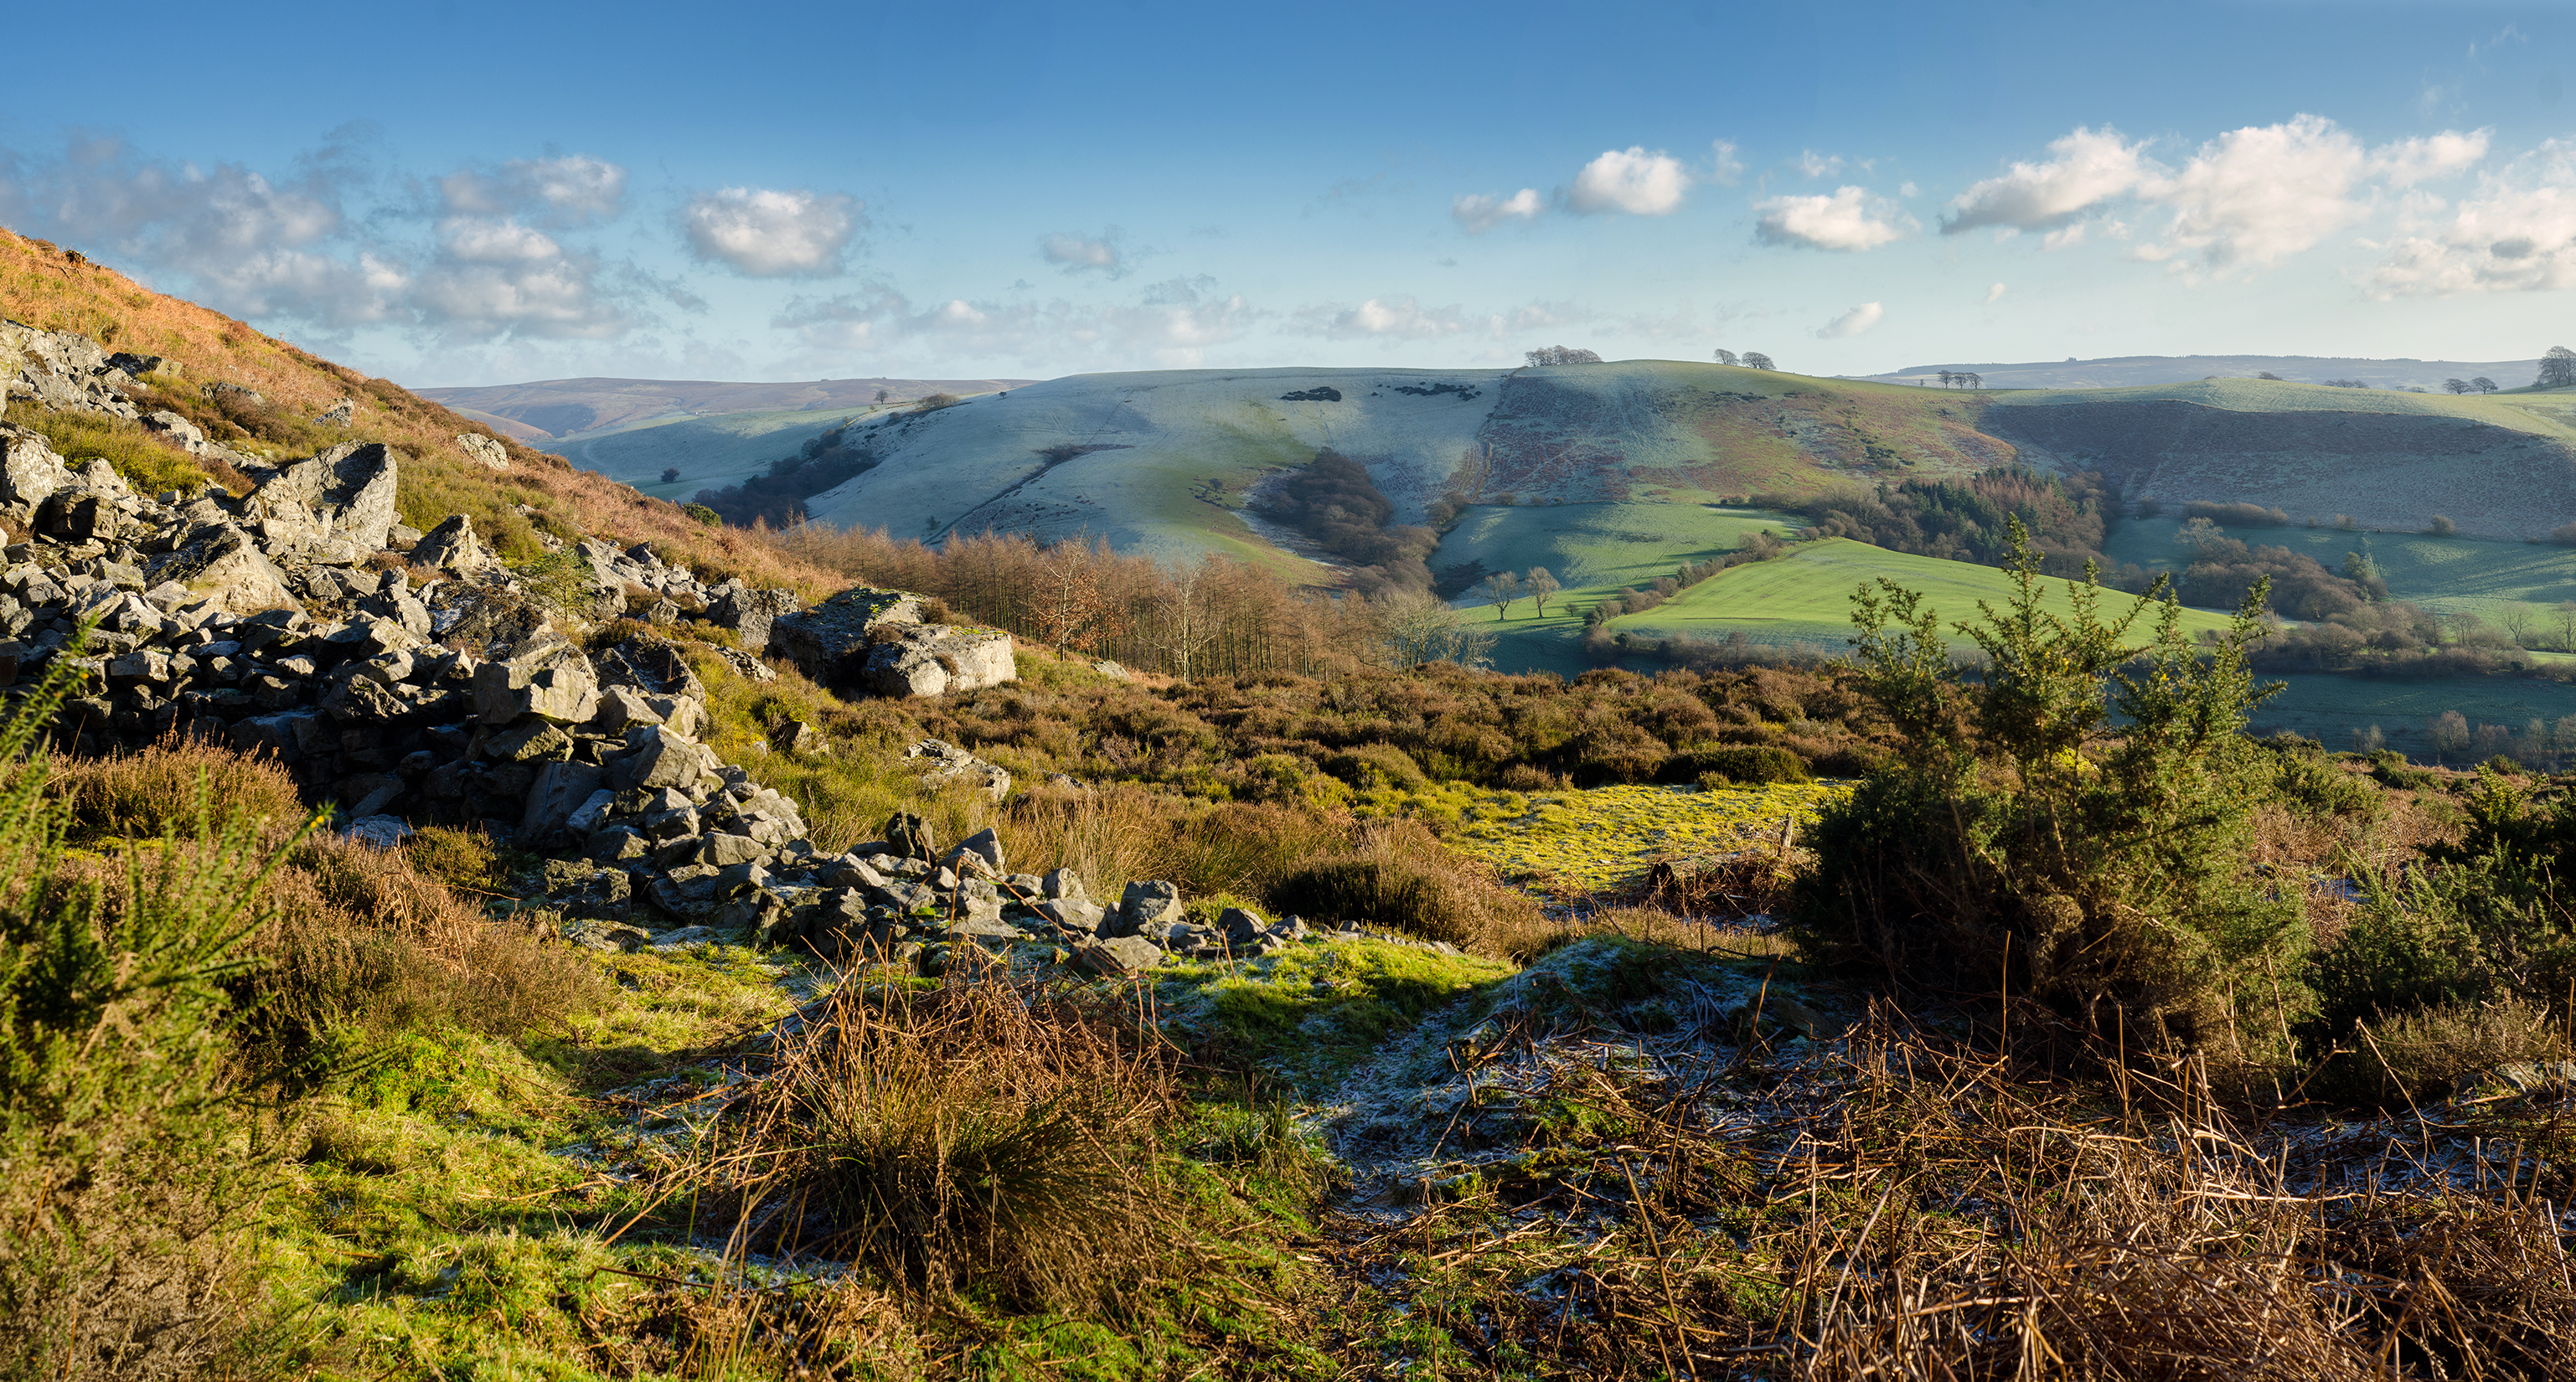 The Stiperstones in the Shropshire Hills